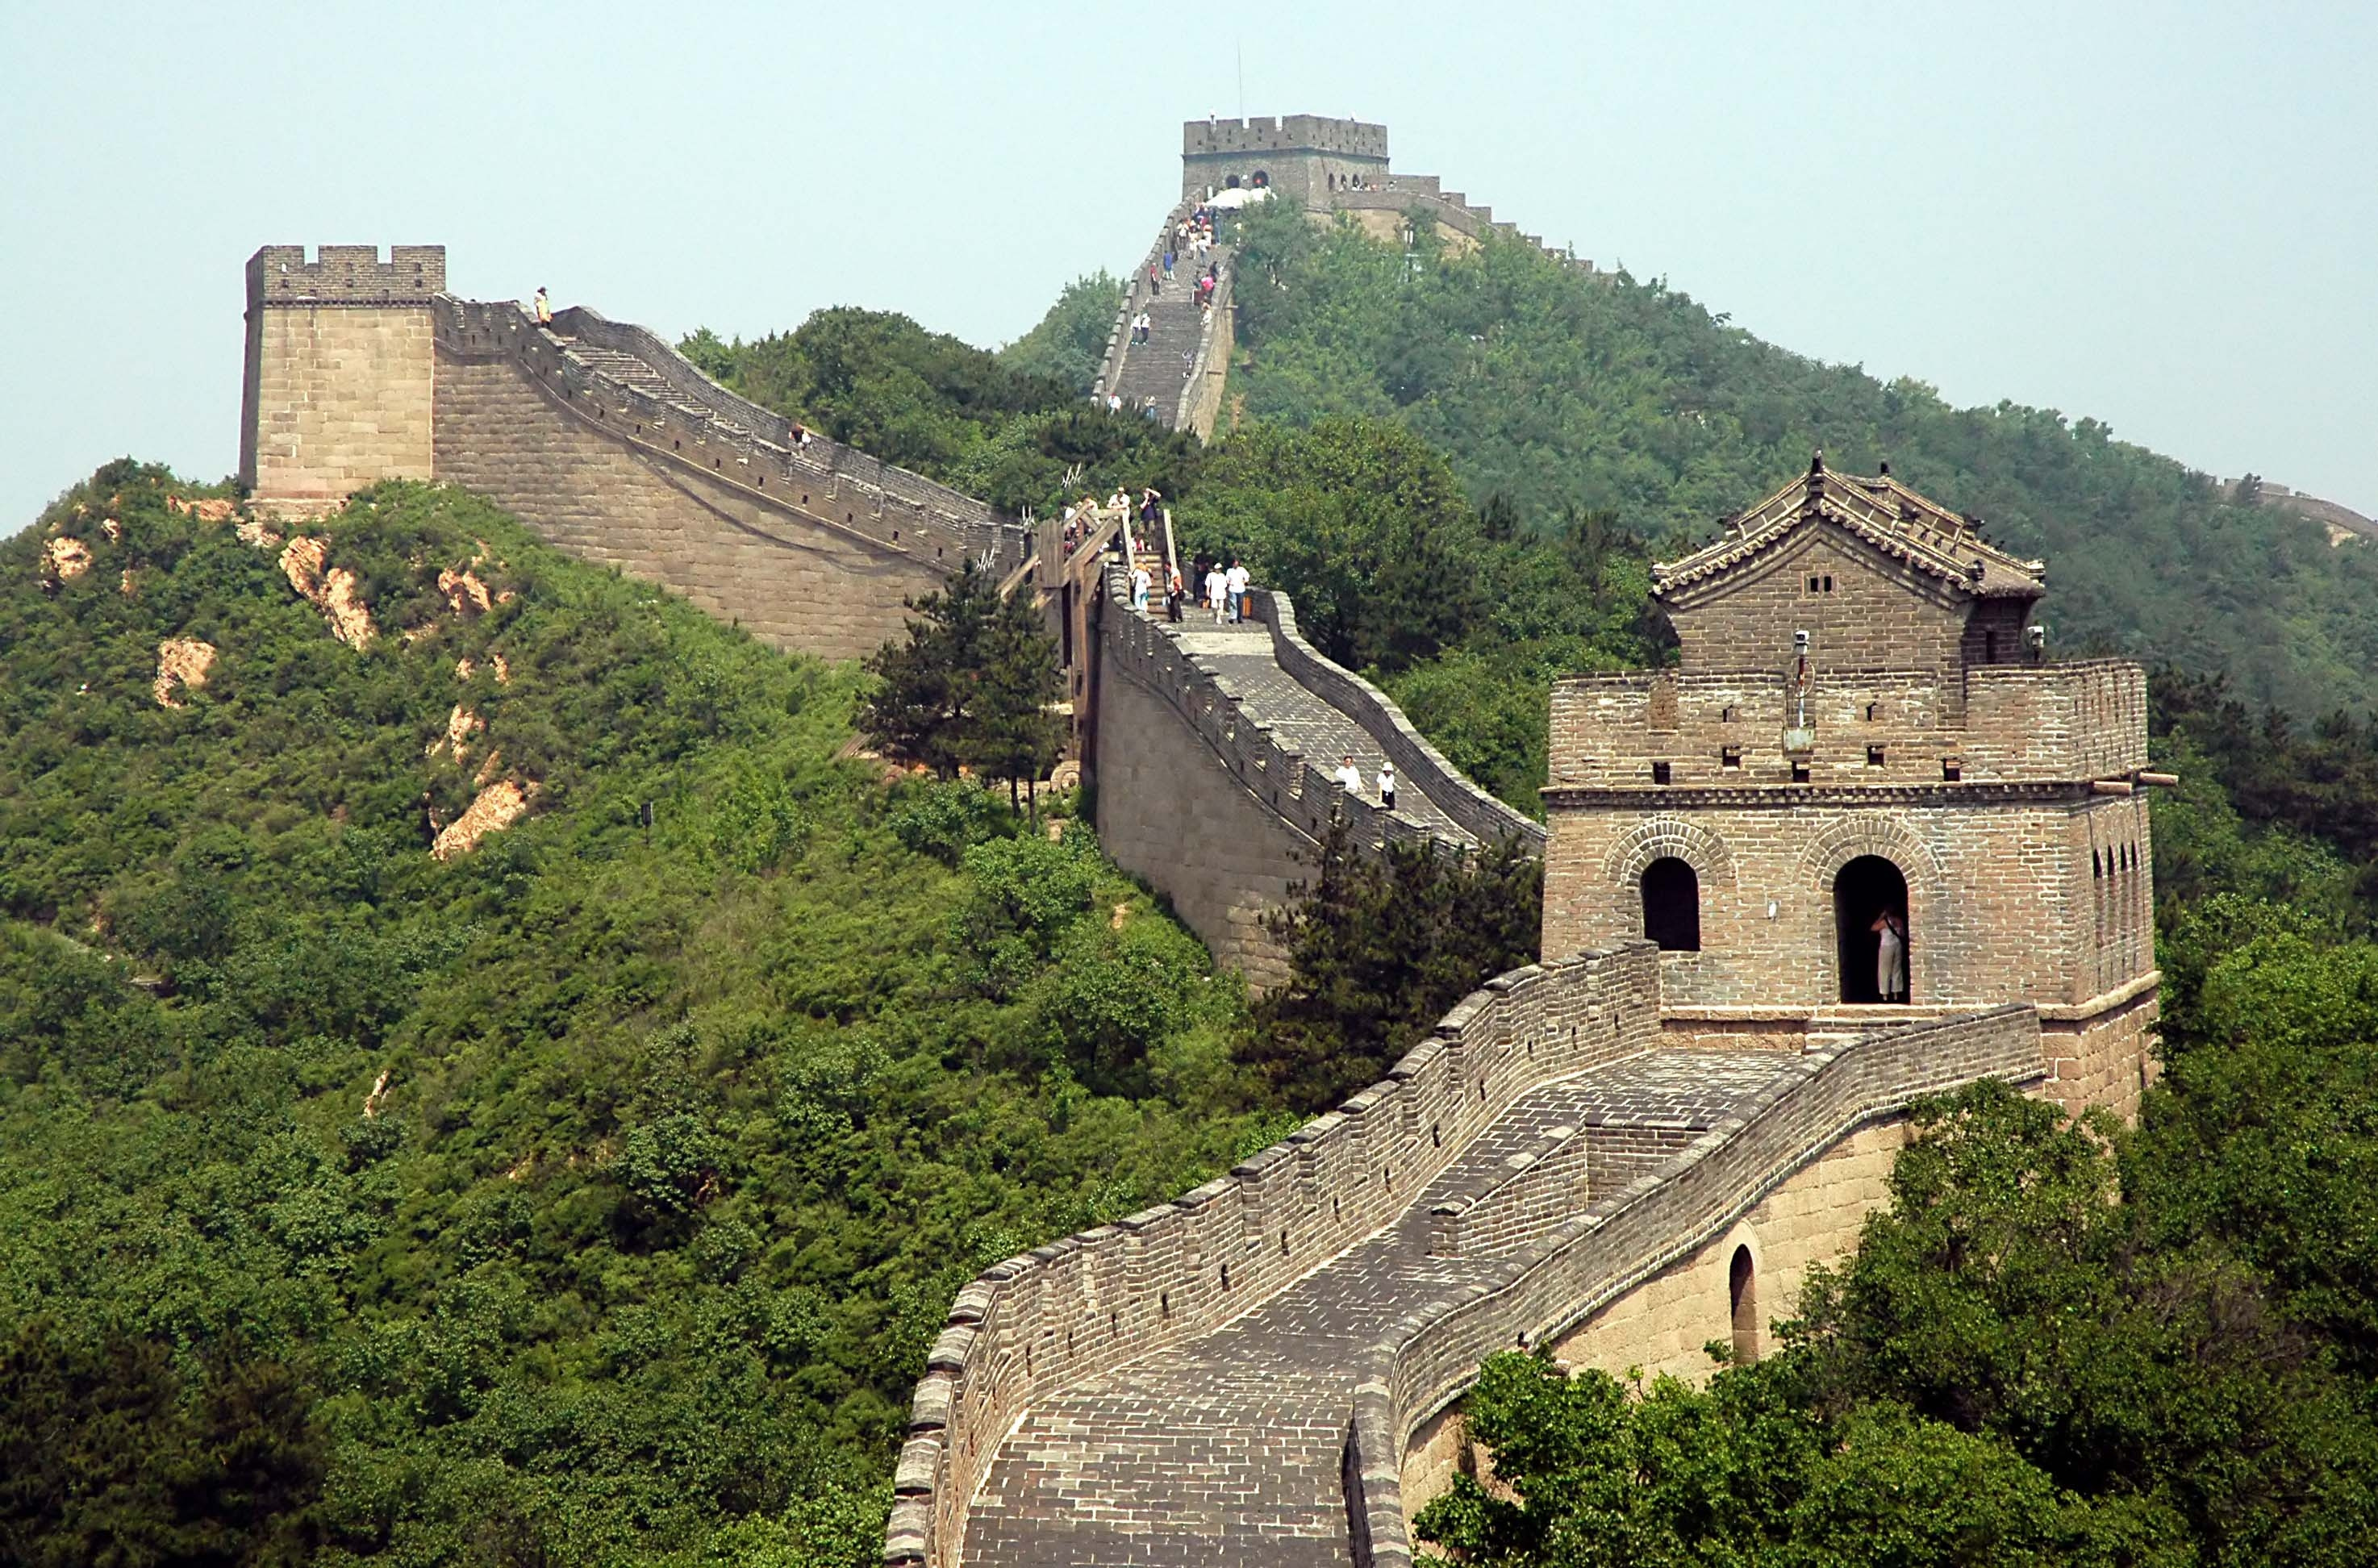 Great-wall-of-china | Full Stop